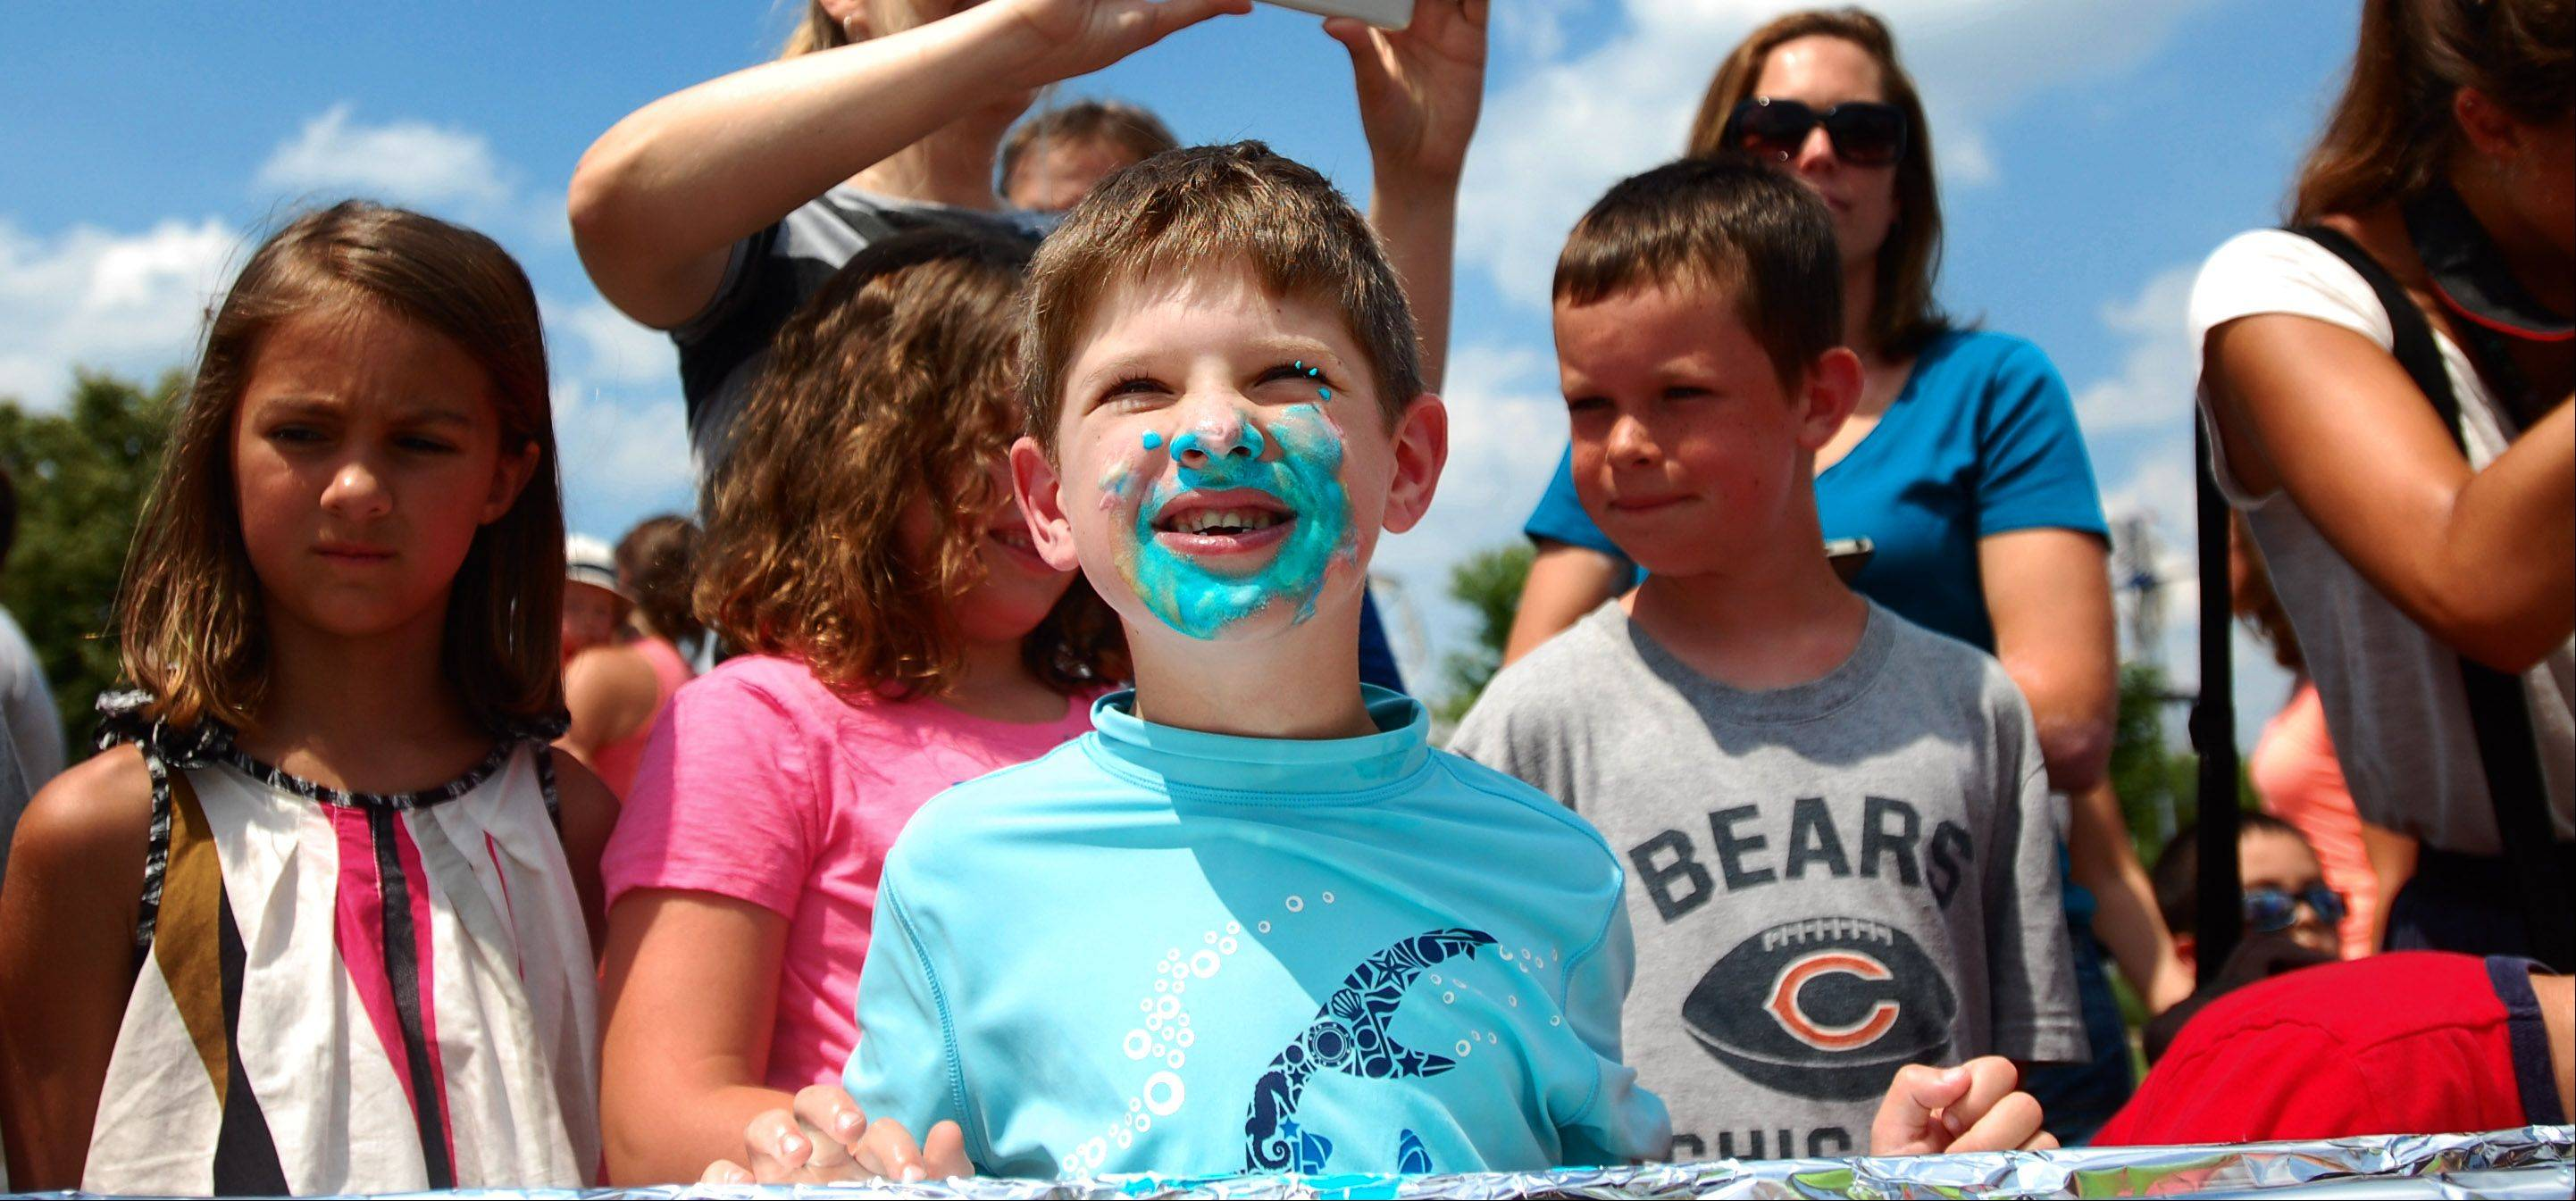 "Joe Schroeder, 6, of Batavia emerges from his ice cream smiling at his family after completing the ""Get your Mind in the Gutter"" Ice cream eating contest. The contest was held at the Windmill City Festival on Sunday, July 14 at the Riverwalk in Batavia."